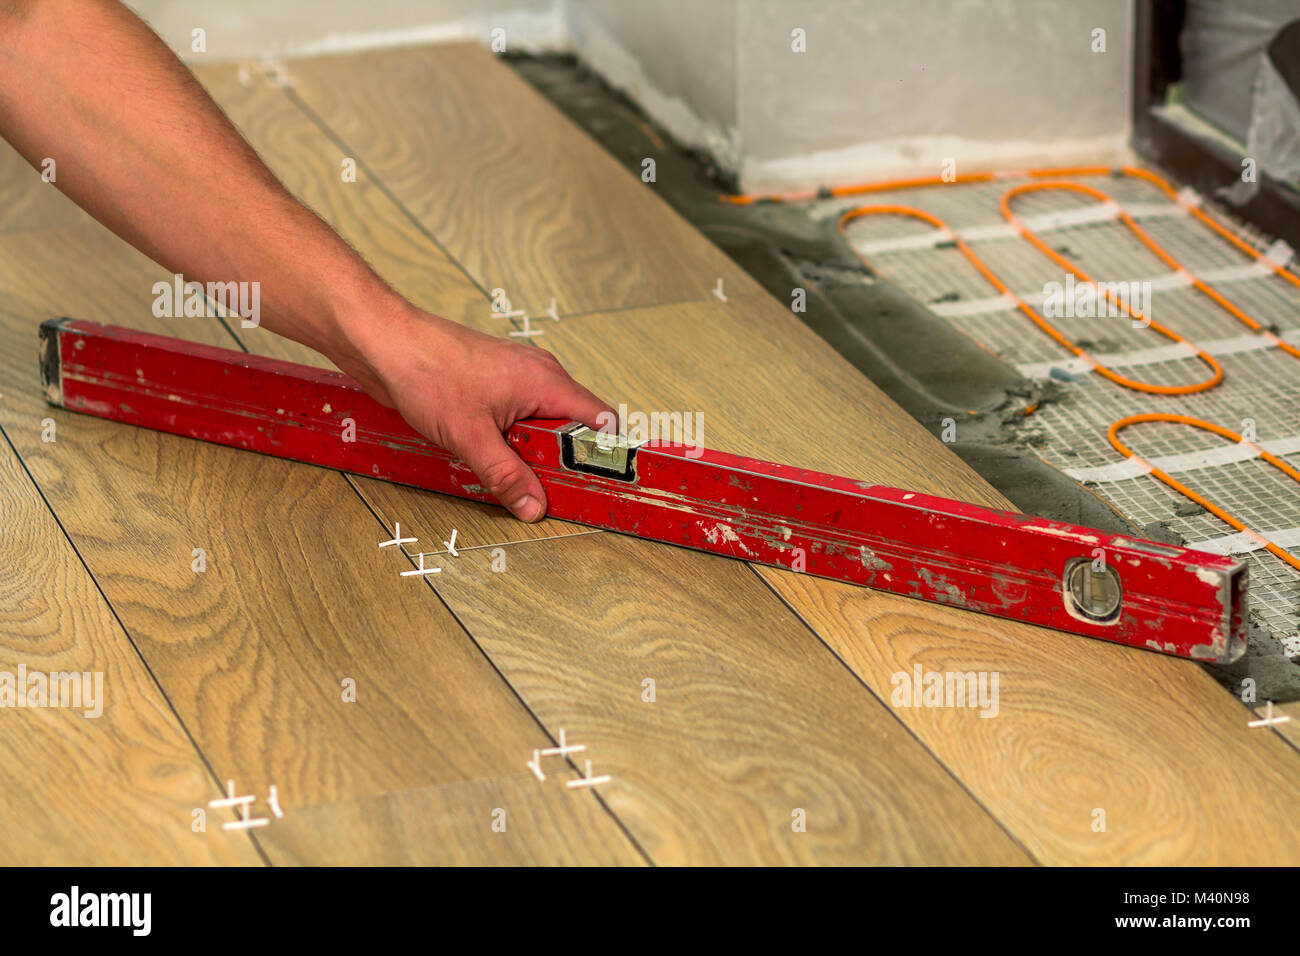 Heated floors stock photos heated floors stock images alamy installation of ceramic tiles and heating elements in warm tile floor renovation and improvement concept dailygadgetfo Images